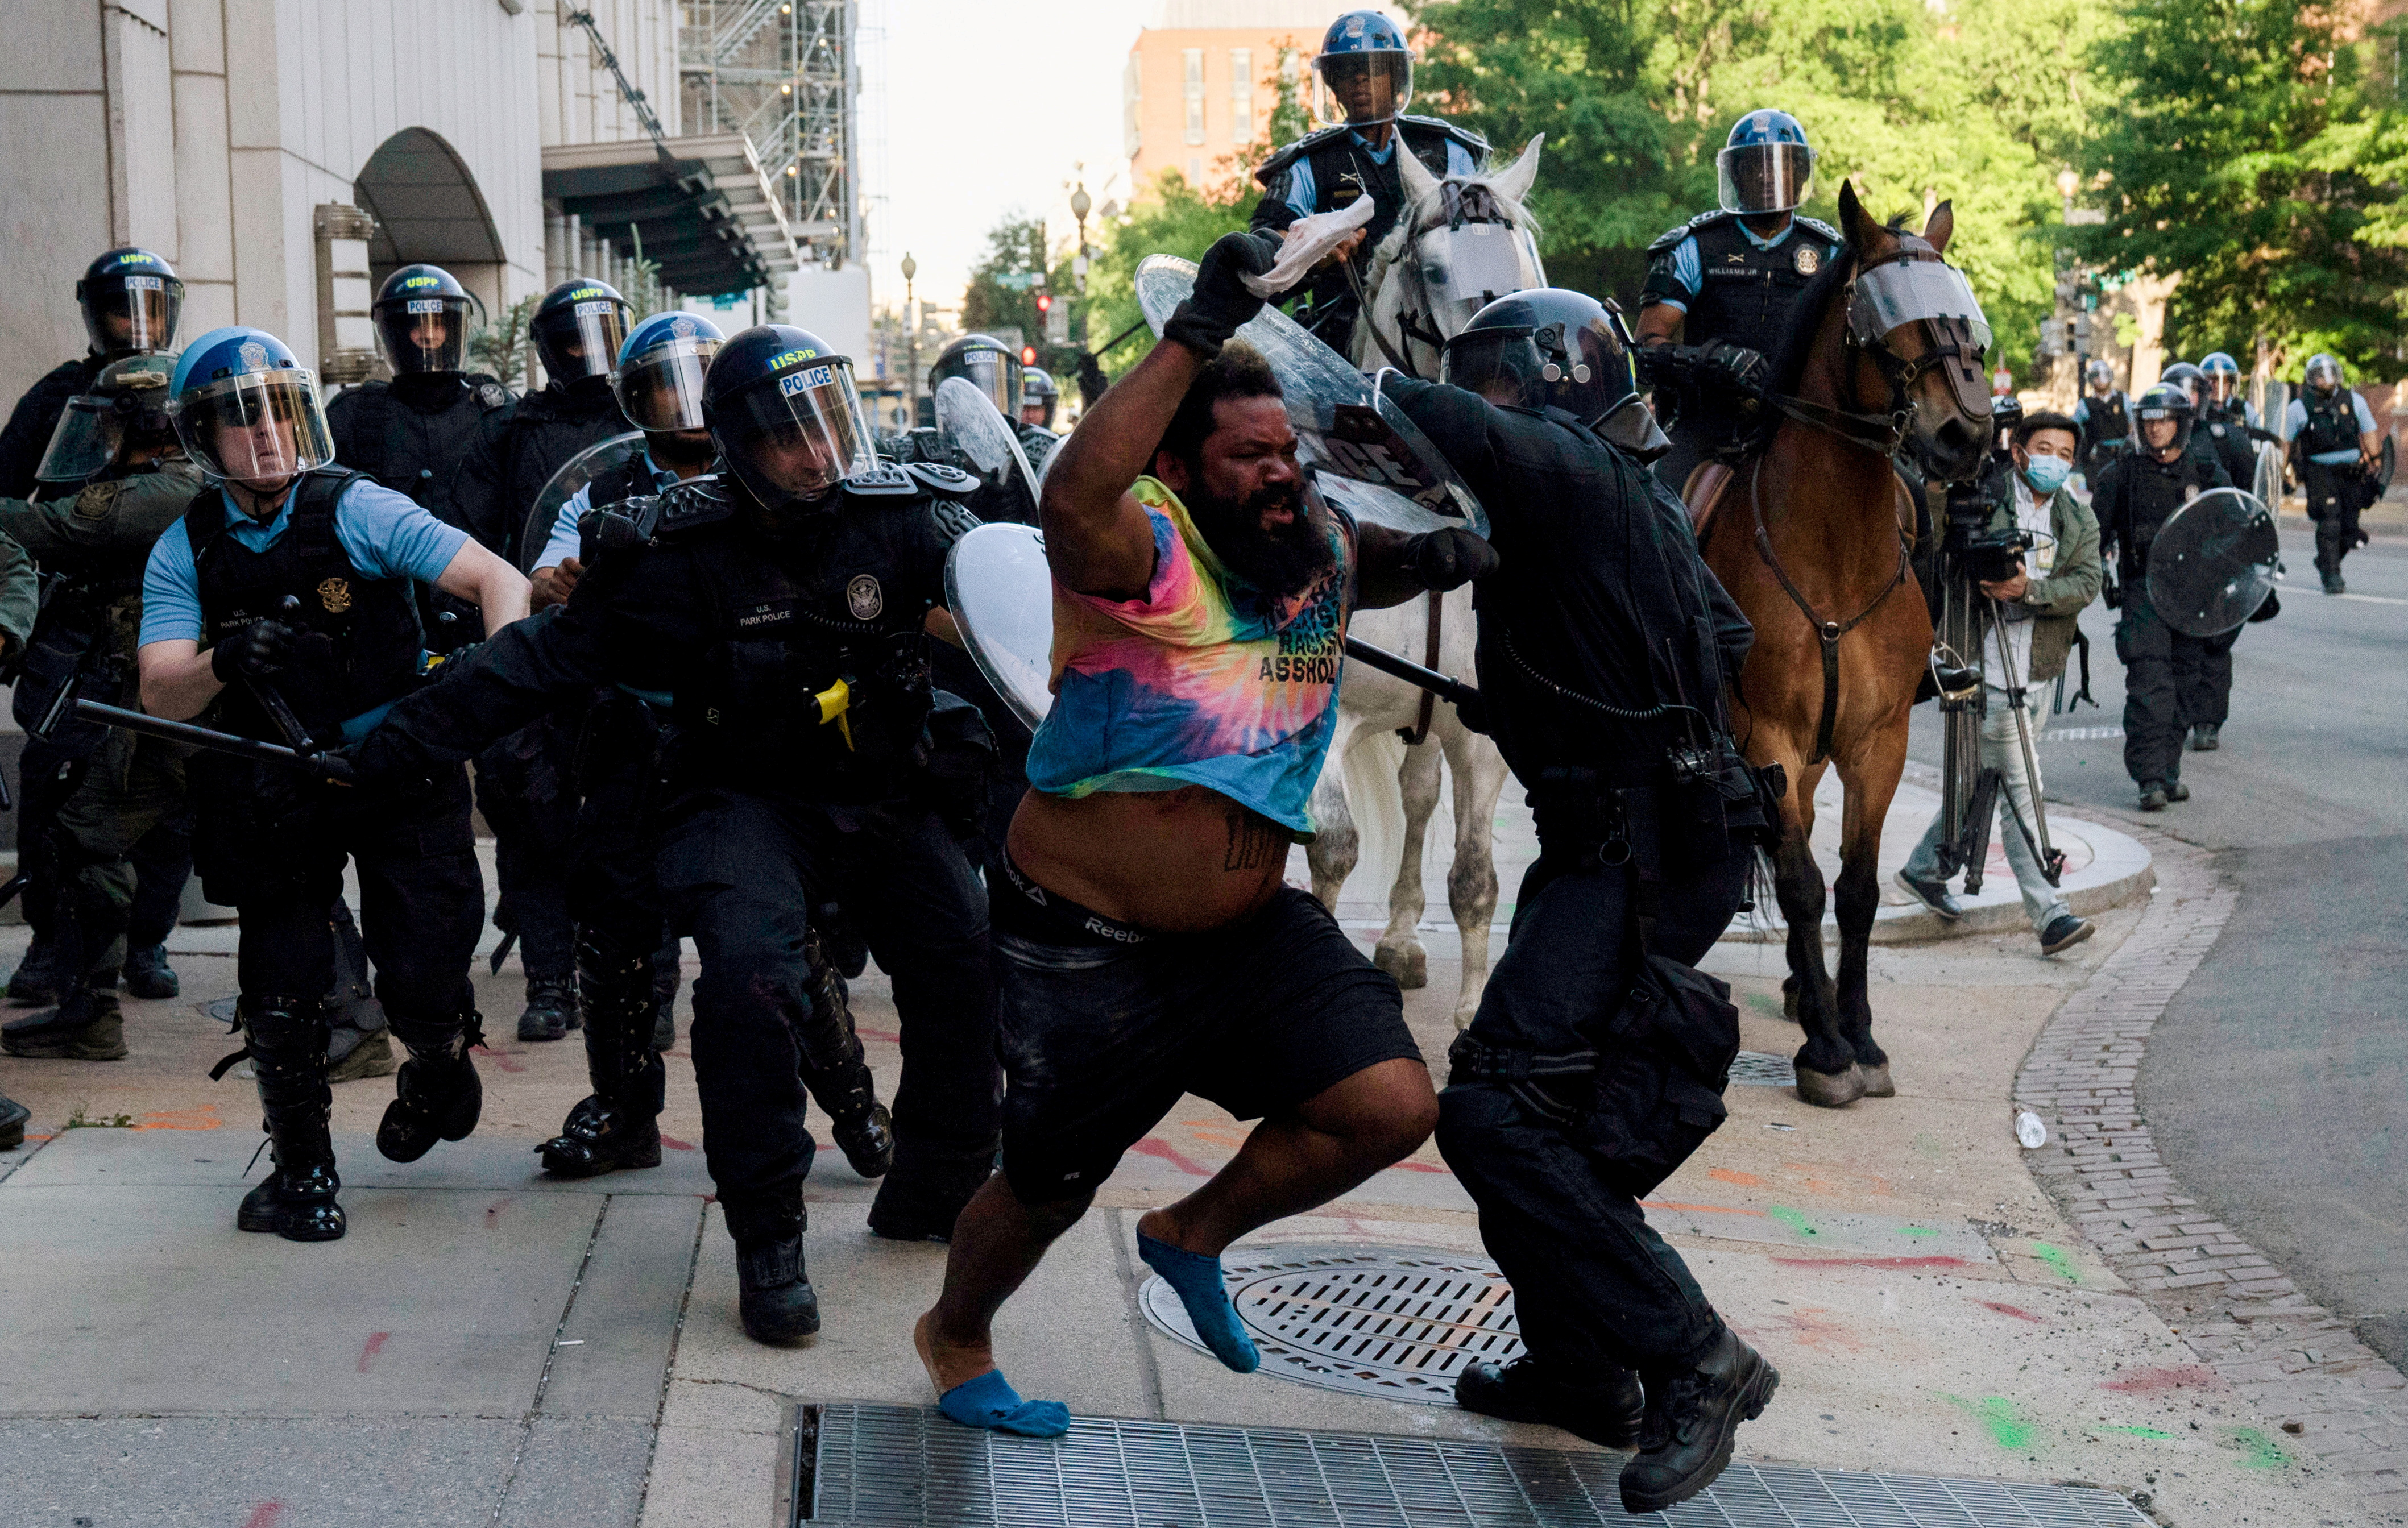 Riot police chase a man as they rush protestors to clear Lafayette Park and the area around it across from the White House for President Donald Trump to be able to walk through for a photo opportunity in front of St. John's Episcopal Church, during a rally against the death in Minneapolis police custody of George Floyd, near the White House, in Washington, U.S. June 1, 2020. REUTERS/Ken Cedeno